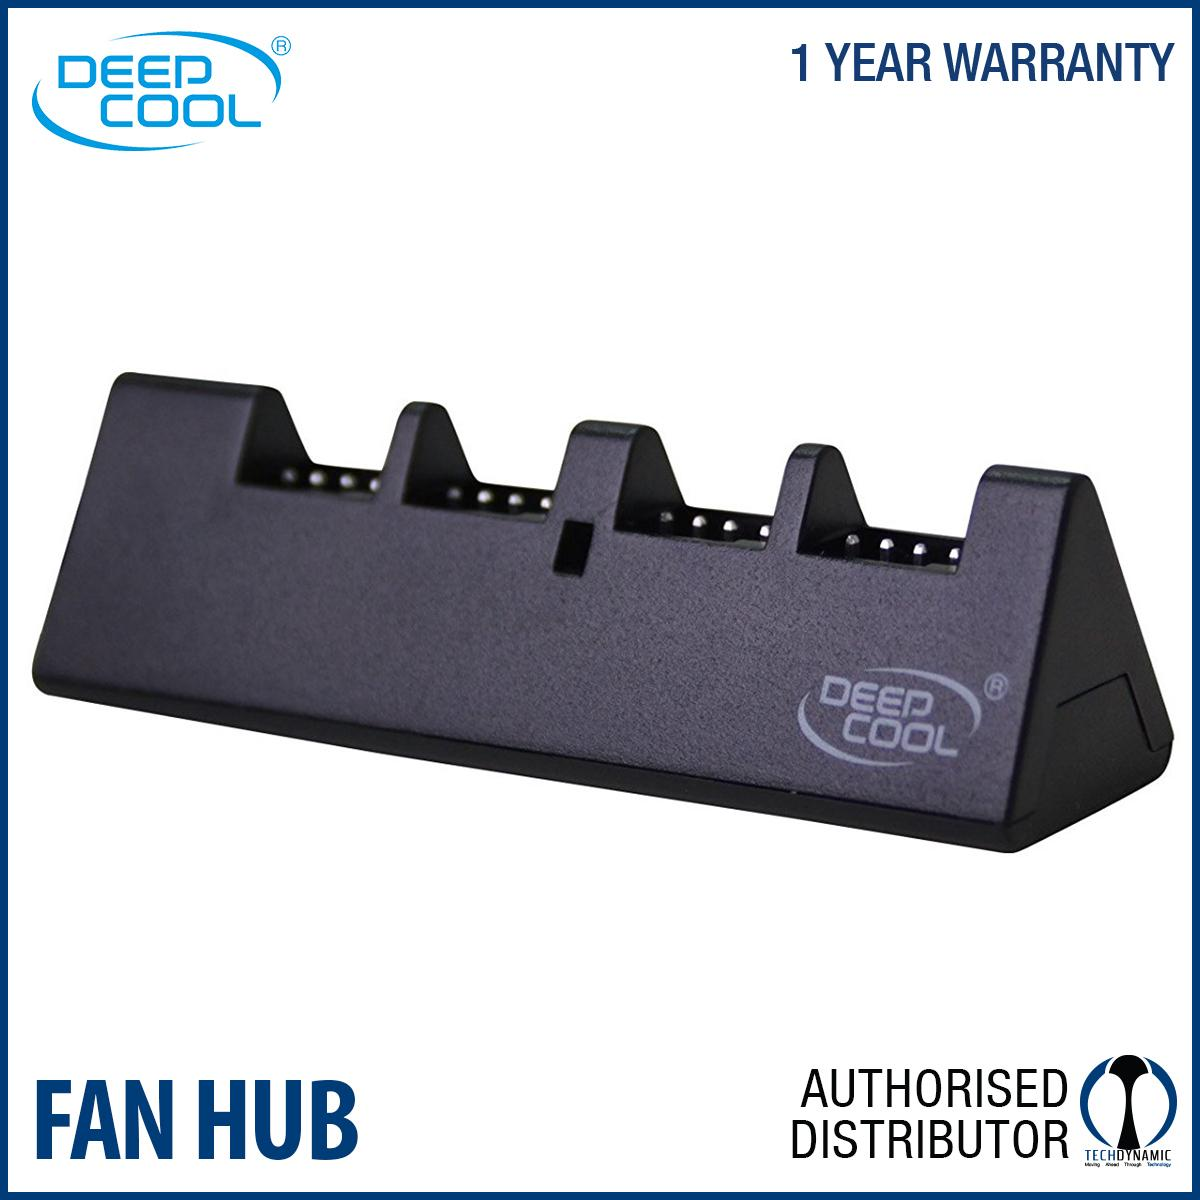 Sale Deepcool Pwm Fan Hubᅠ Deepcool